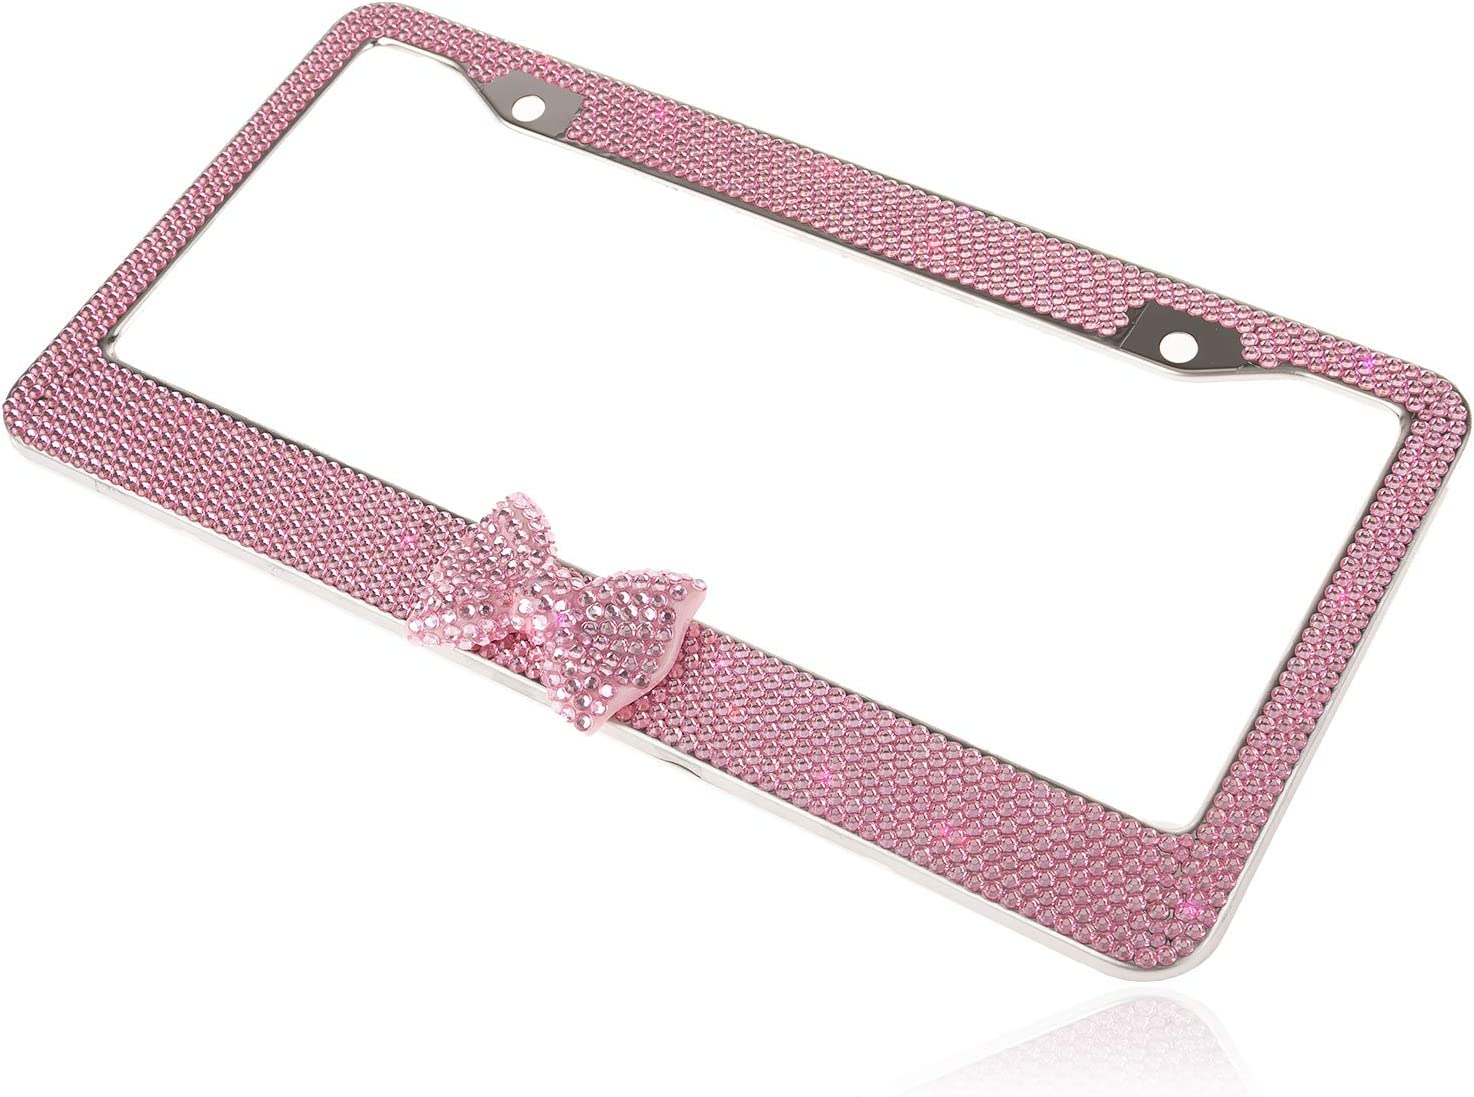 1 Frame Better Solution Lovely Handmade Sparkle Pink Frame W//Pink Bowtie Bling Crystal License Plate Frame Cover Cute Rhinestone Gift License Plate Holder for Lady,Women,Girl,Friends,Family